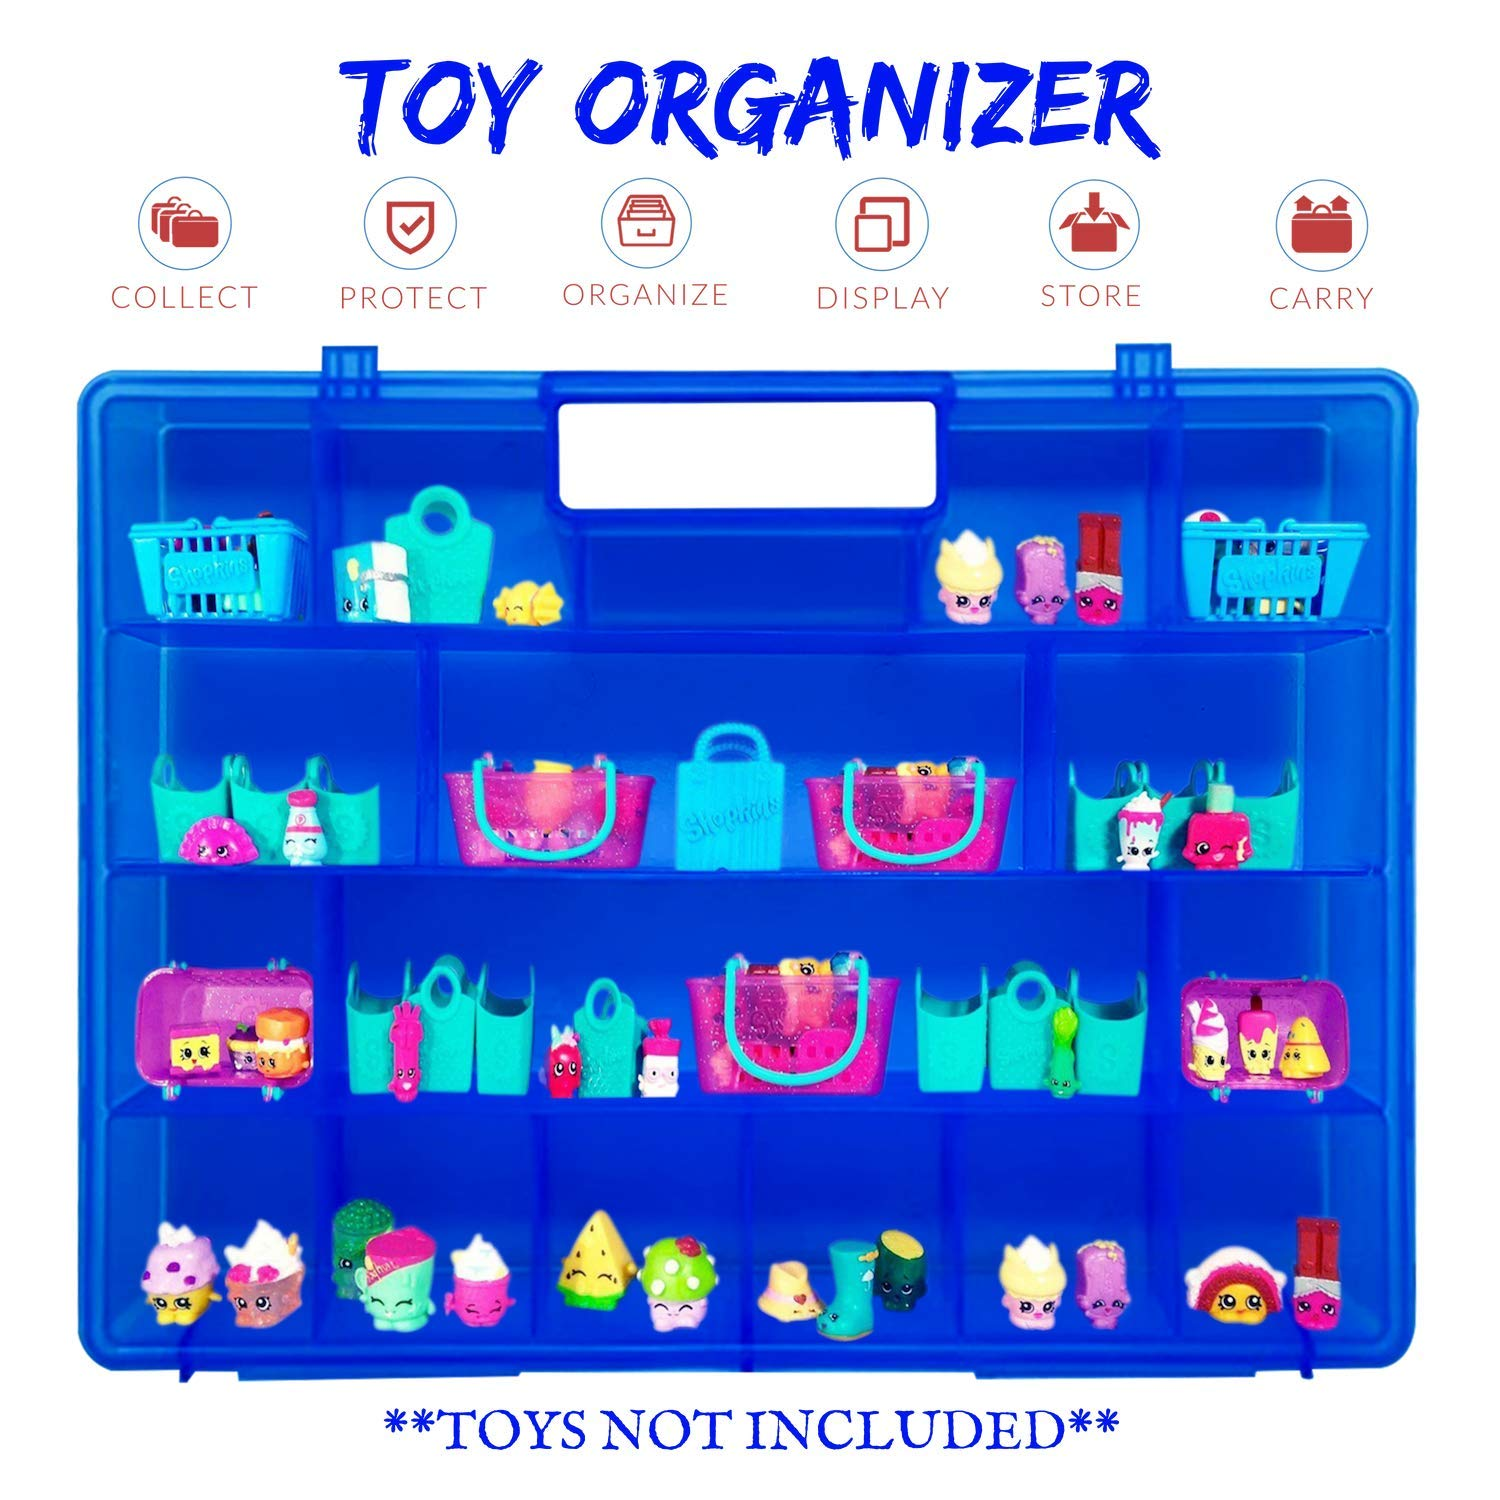 Created Compatible Carrying Case for Shopkins /& Accessories Life Made Better Blue Protector Toy Holder /& Storage Box